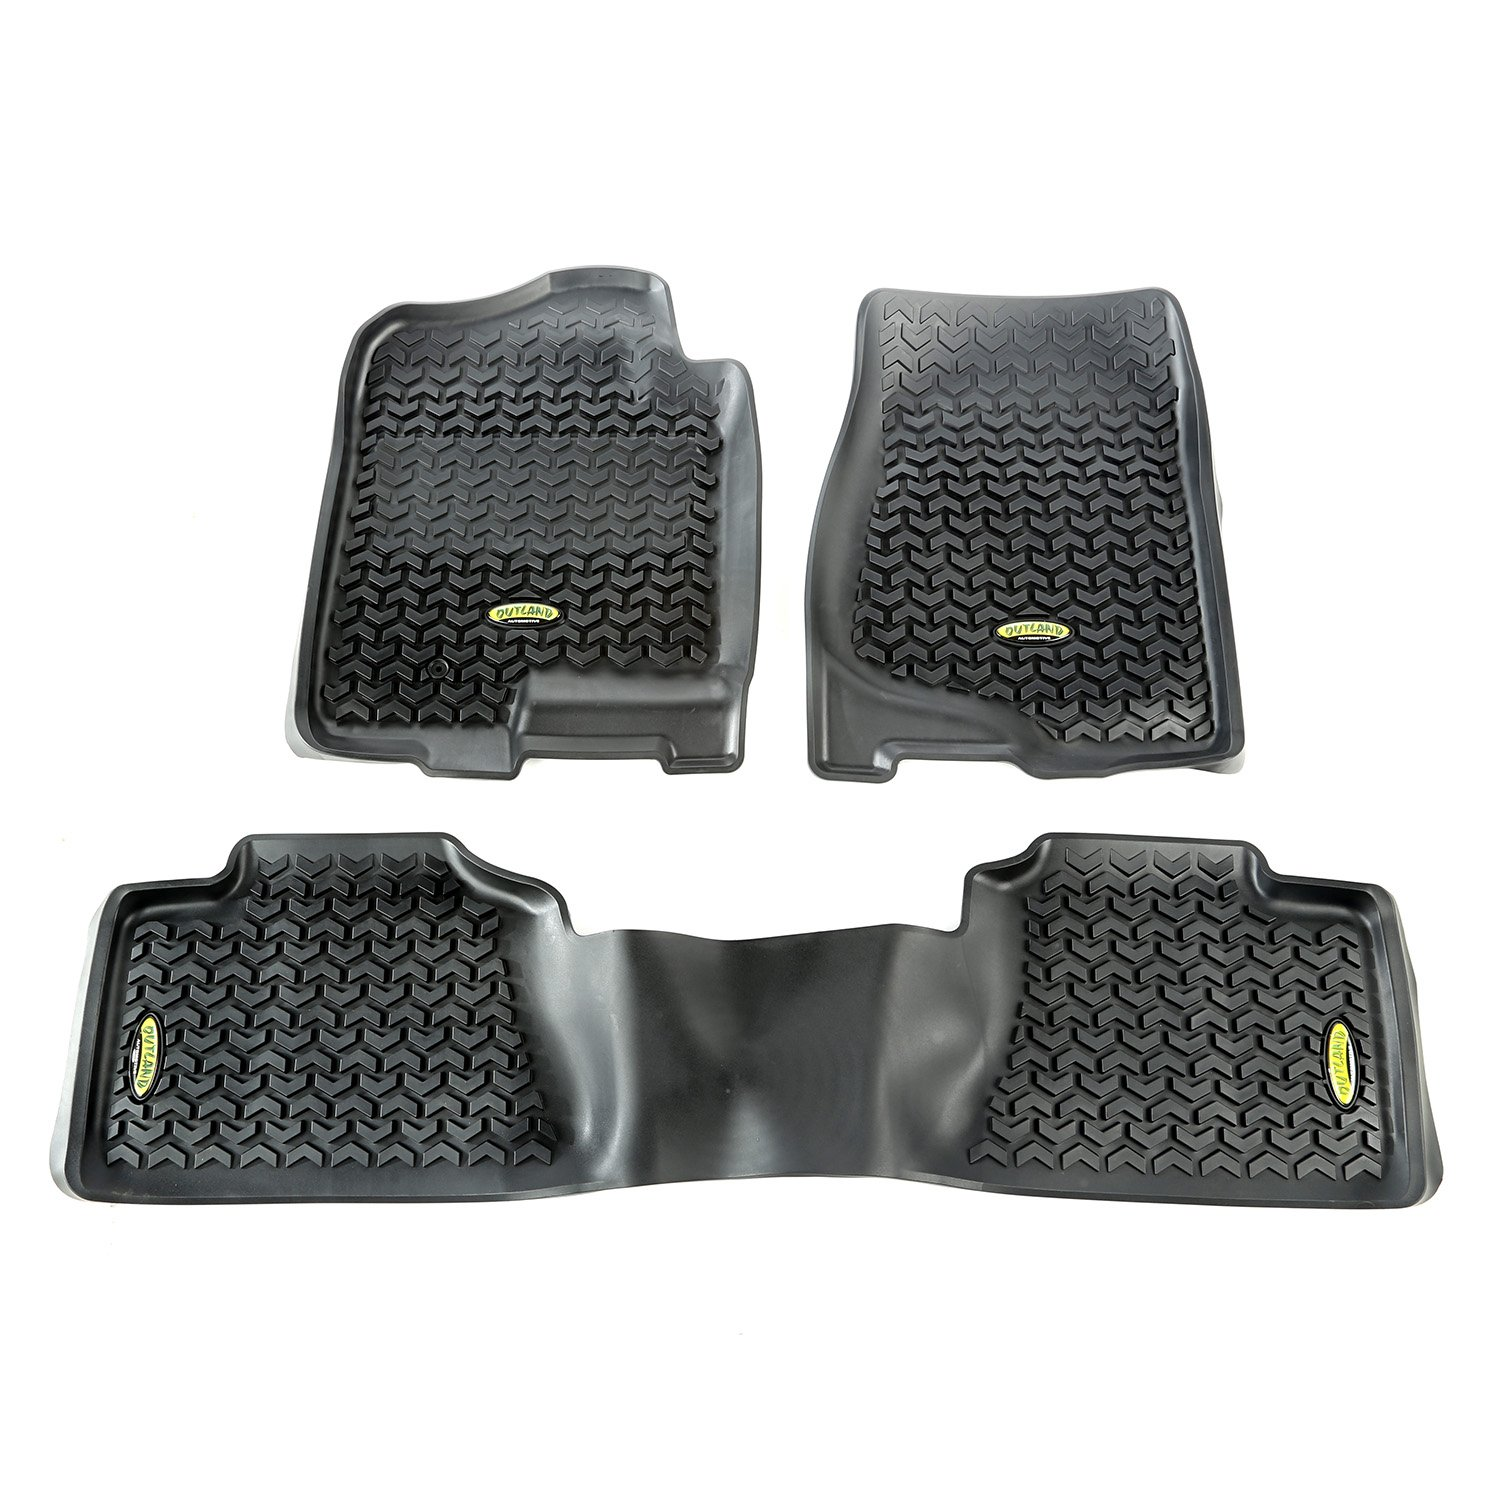 Outland 398298901 Black Front and Rear Floor Liner Kit For Select Chevrolet Avalanche Silverado GMC Sierra and Yukon Models Tahoe Suburban